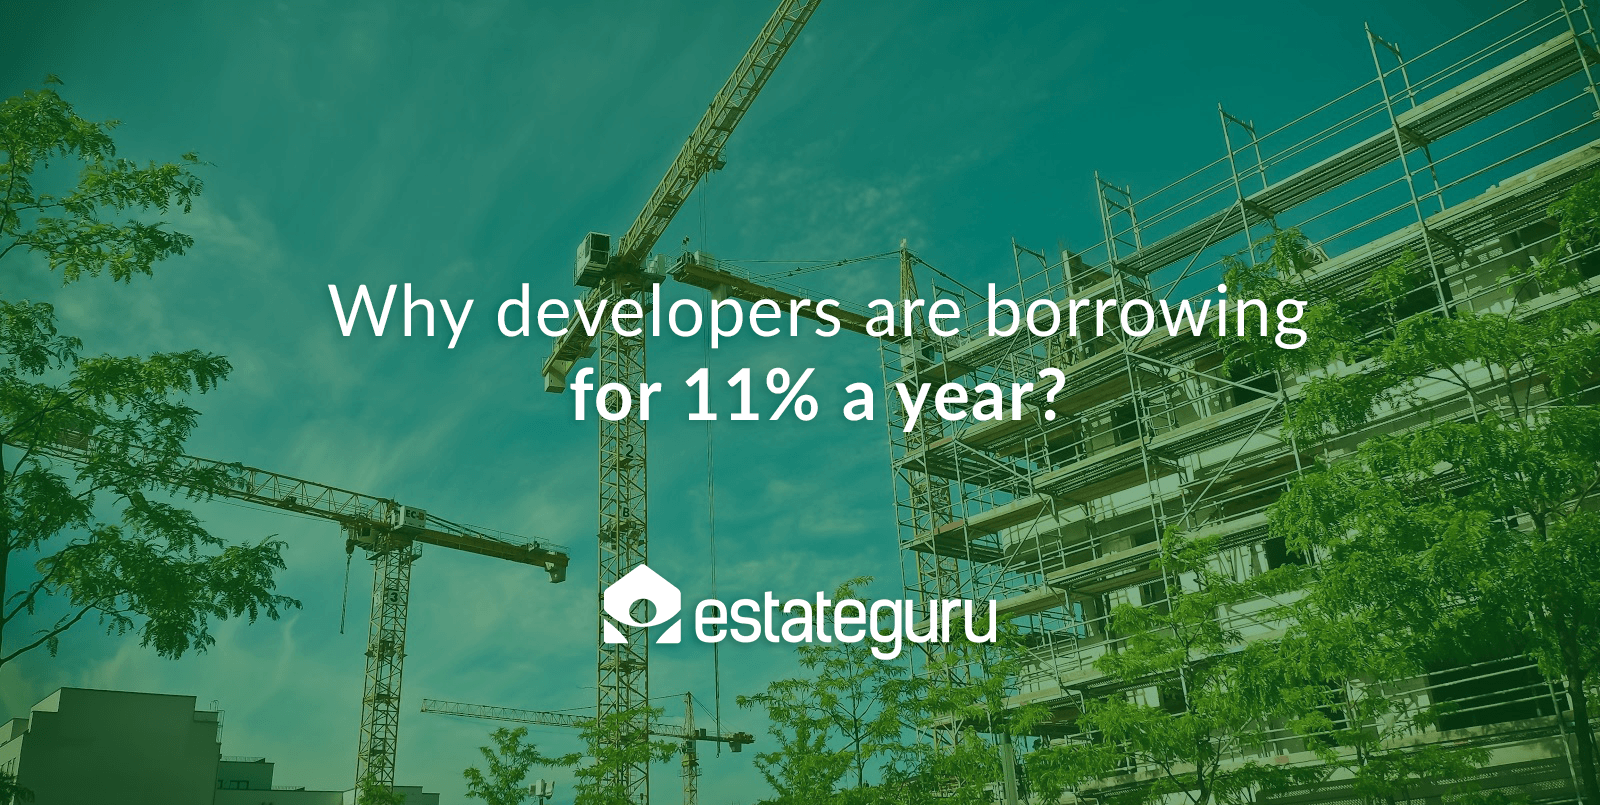 Why developers are borrowing for 11% a year?